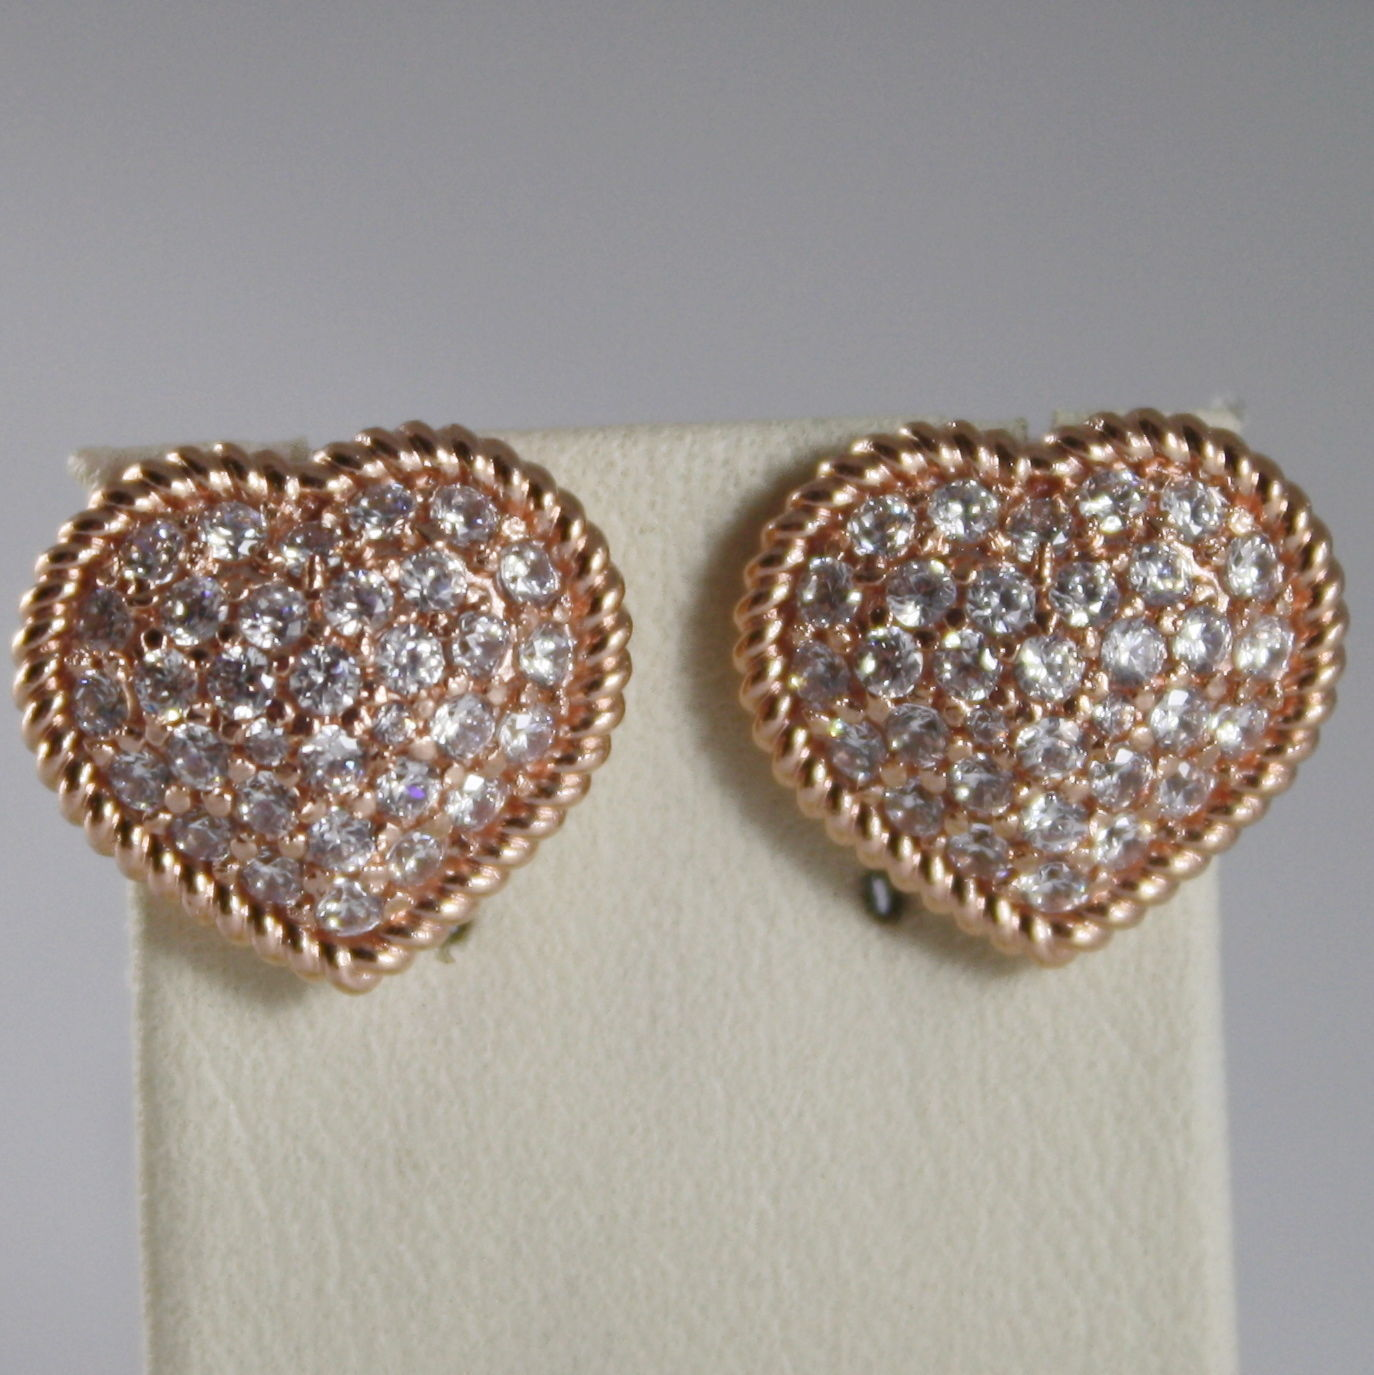 BRONZE EARRINGS, HEART & CUBIC ZIRCONIA B14ORB58, ROSE, BY REBECCA MADE IN ITAL